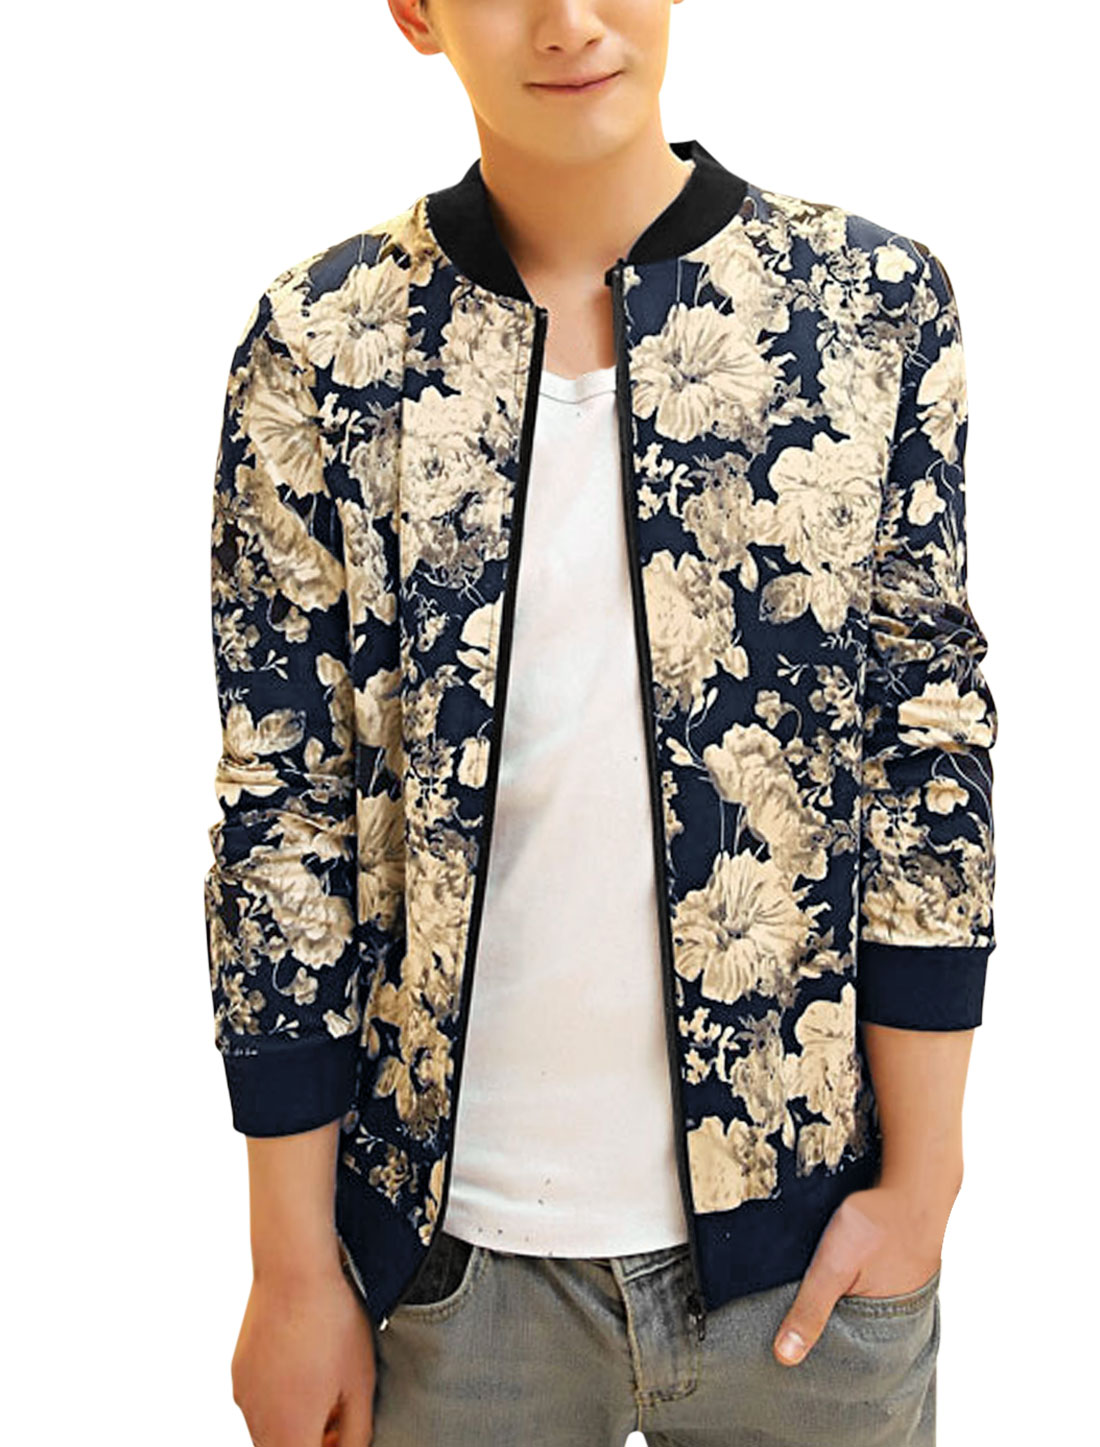 Men Ribbed Cuffs Zip Up Flower Pattern Casual Jacket Navy Blue Beige S